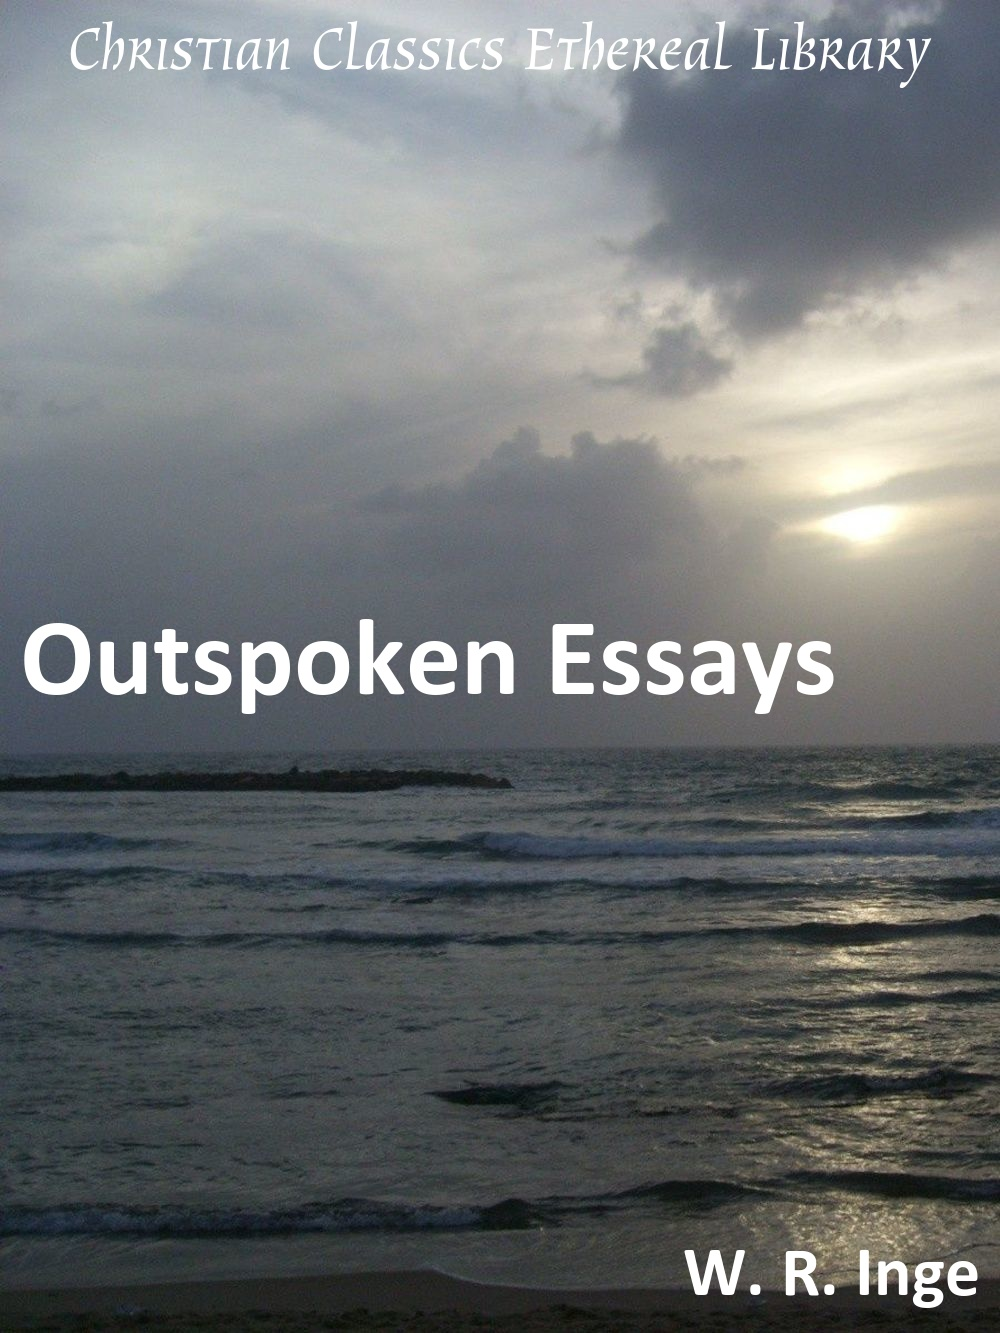 outspoken essays christian classics ethereal library summary